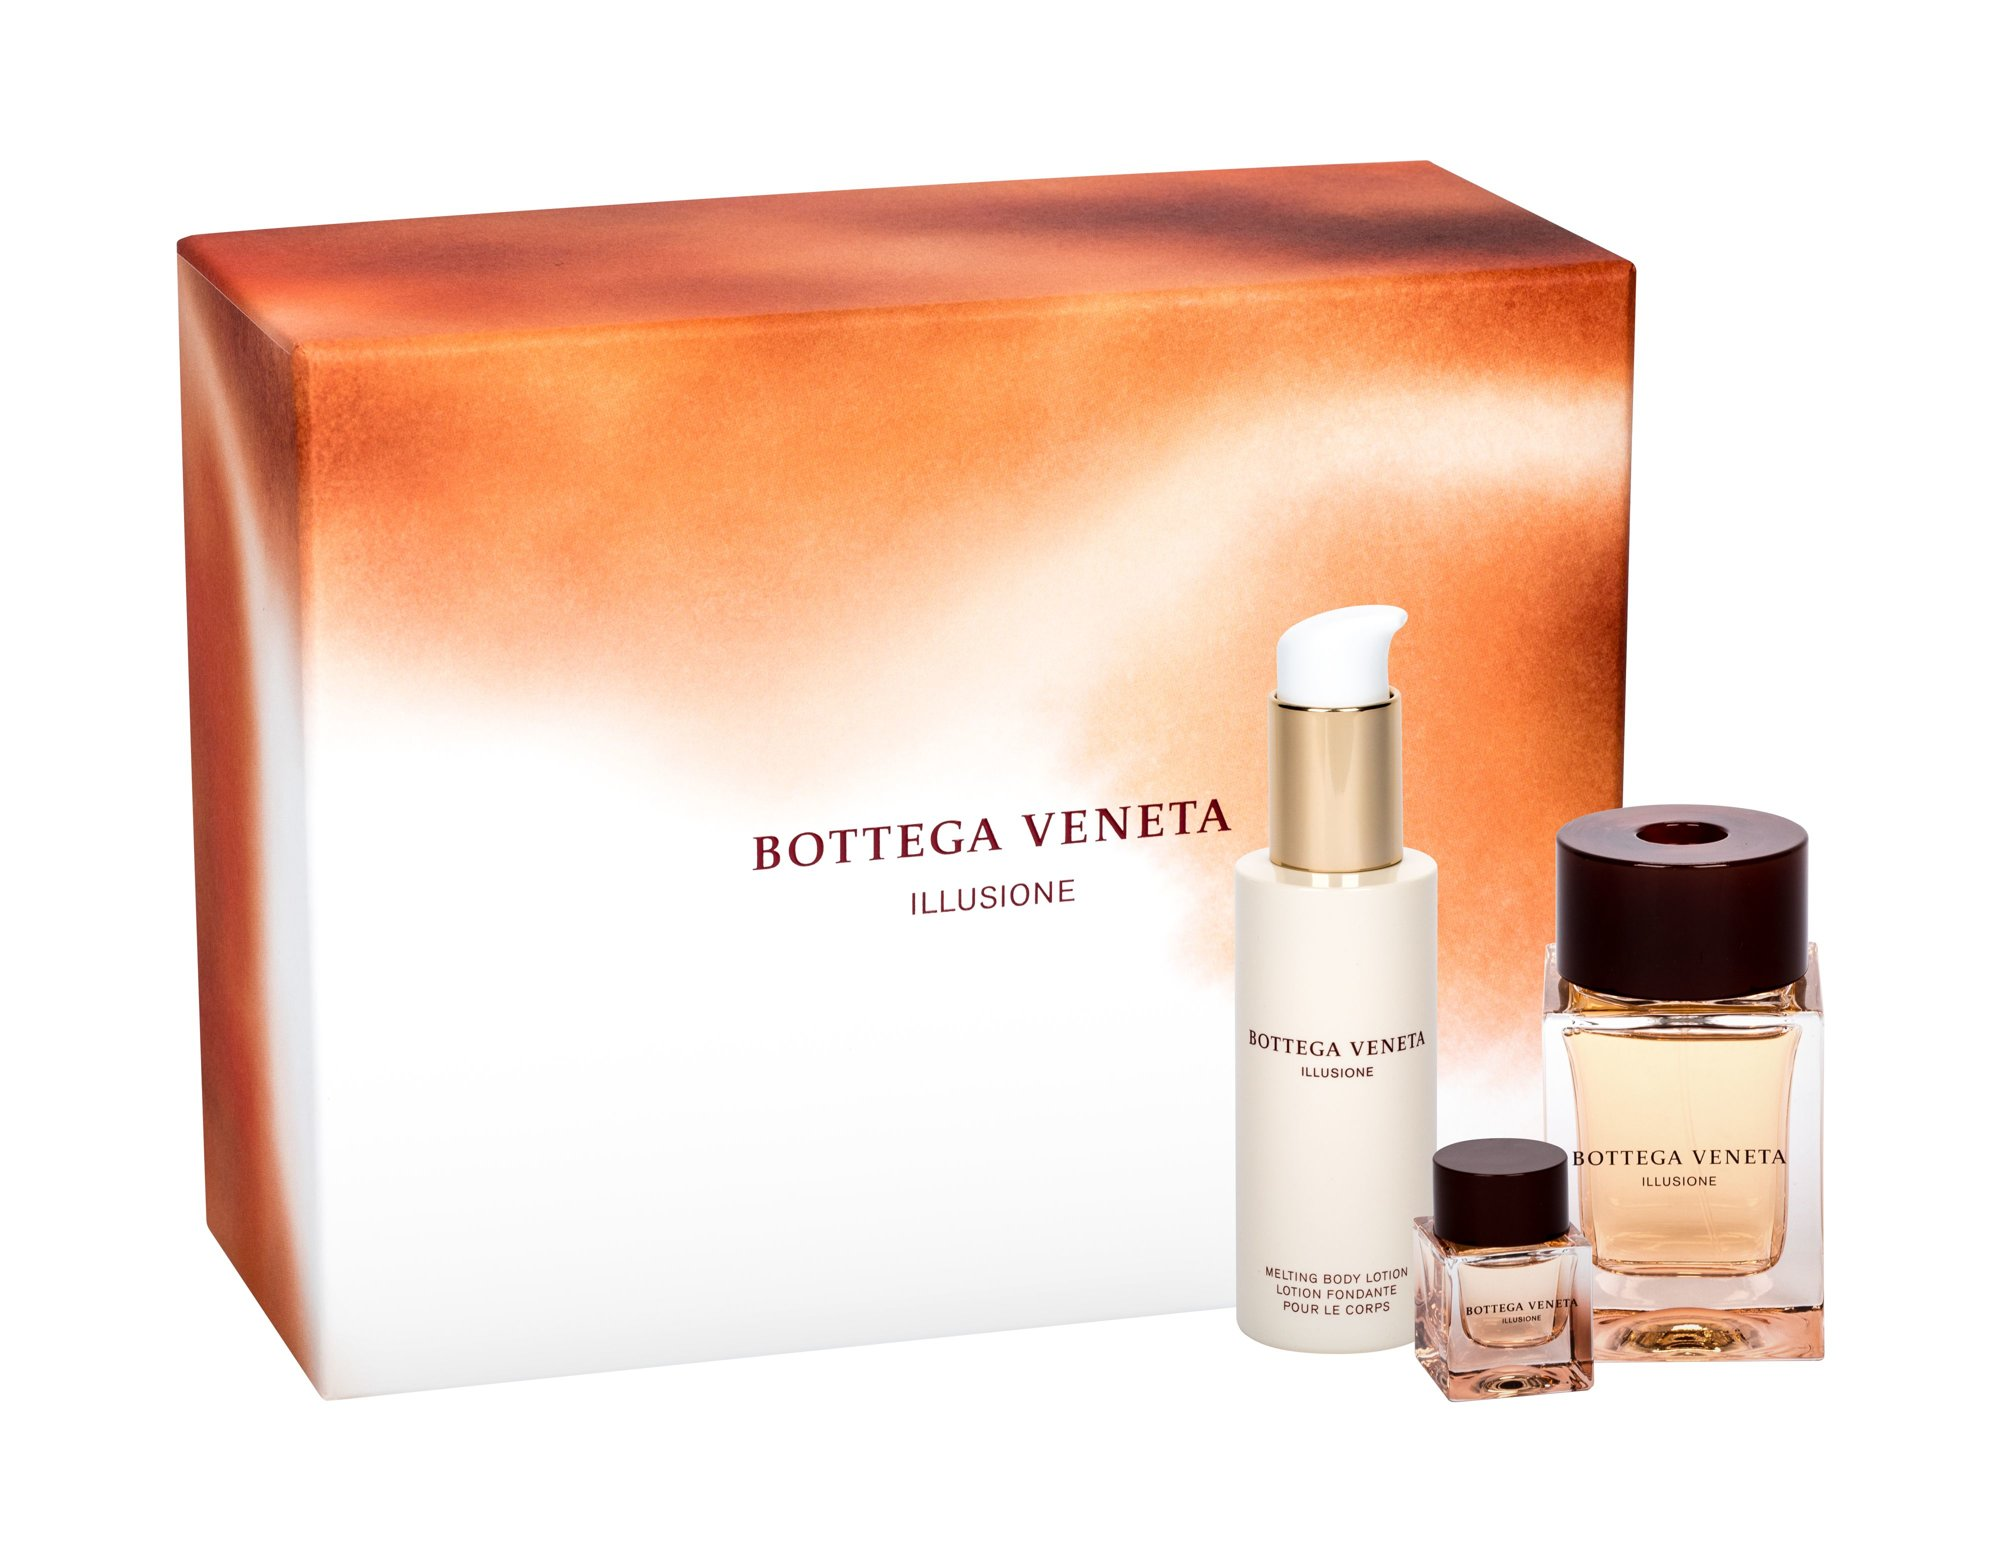 Bottega Veneta Illusione Eau de Parfum 75ml